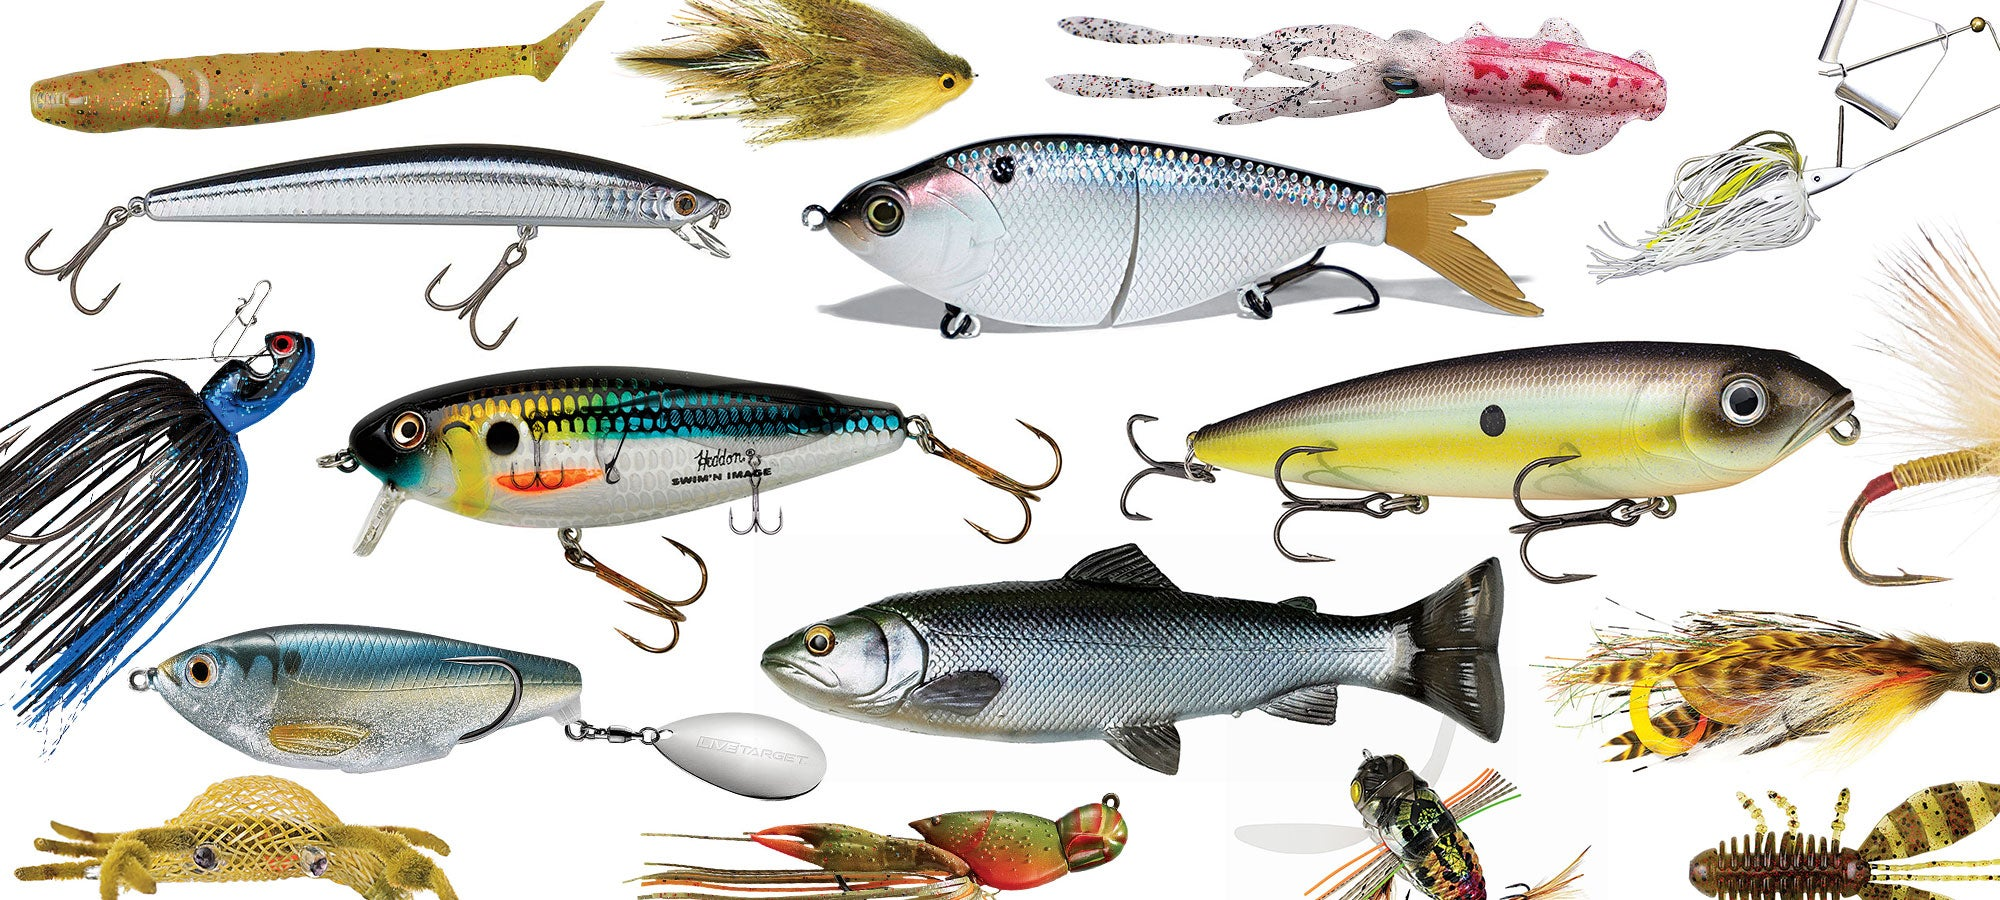 new fishing lures